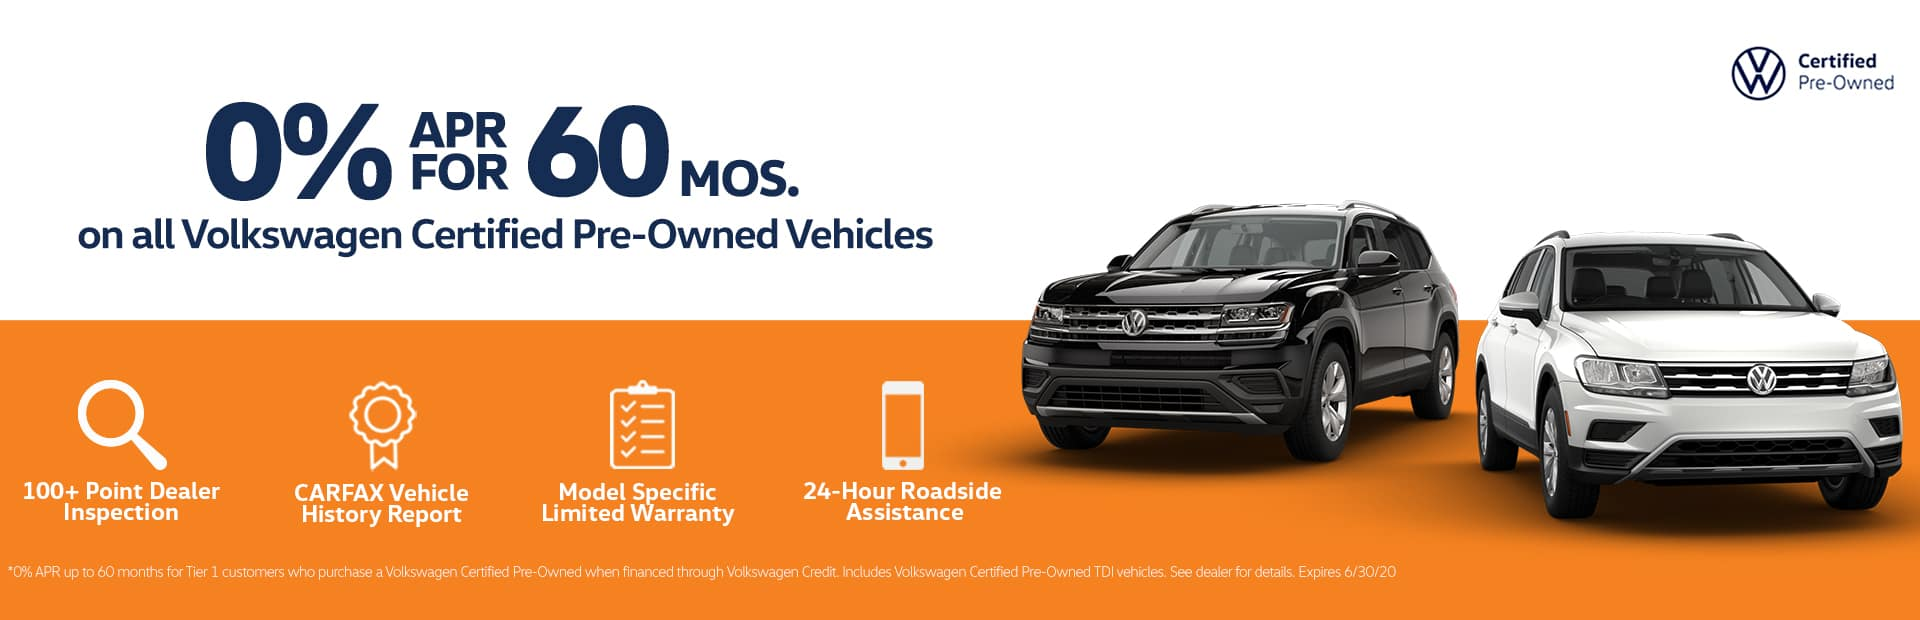 Volkswagen Certified Pre-Owned vehicles 0% APR for 60 Month